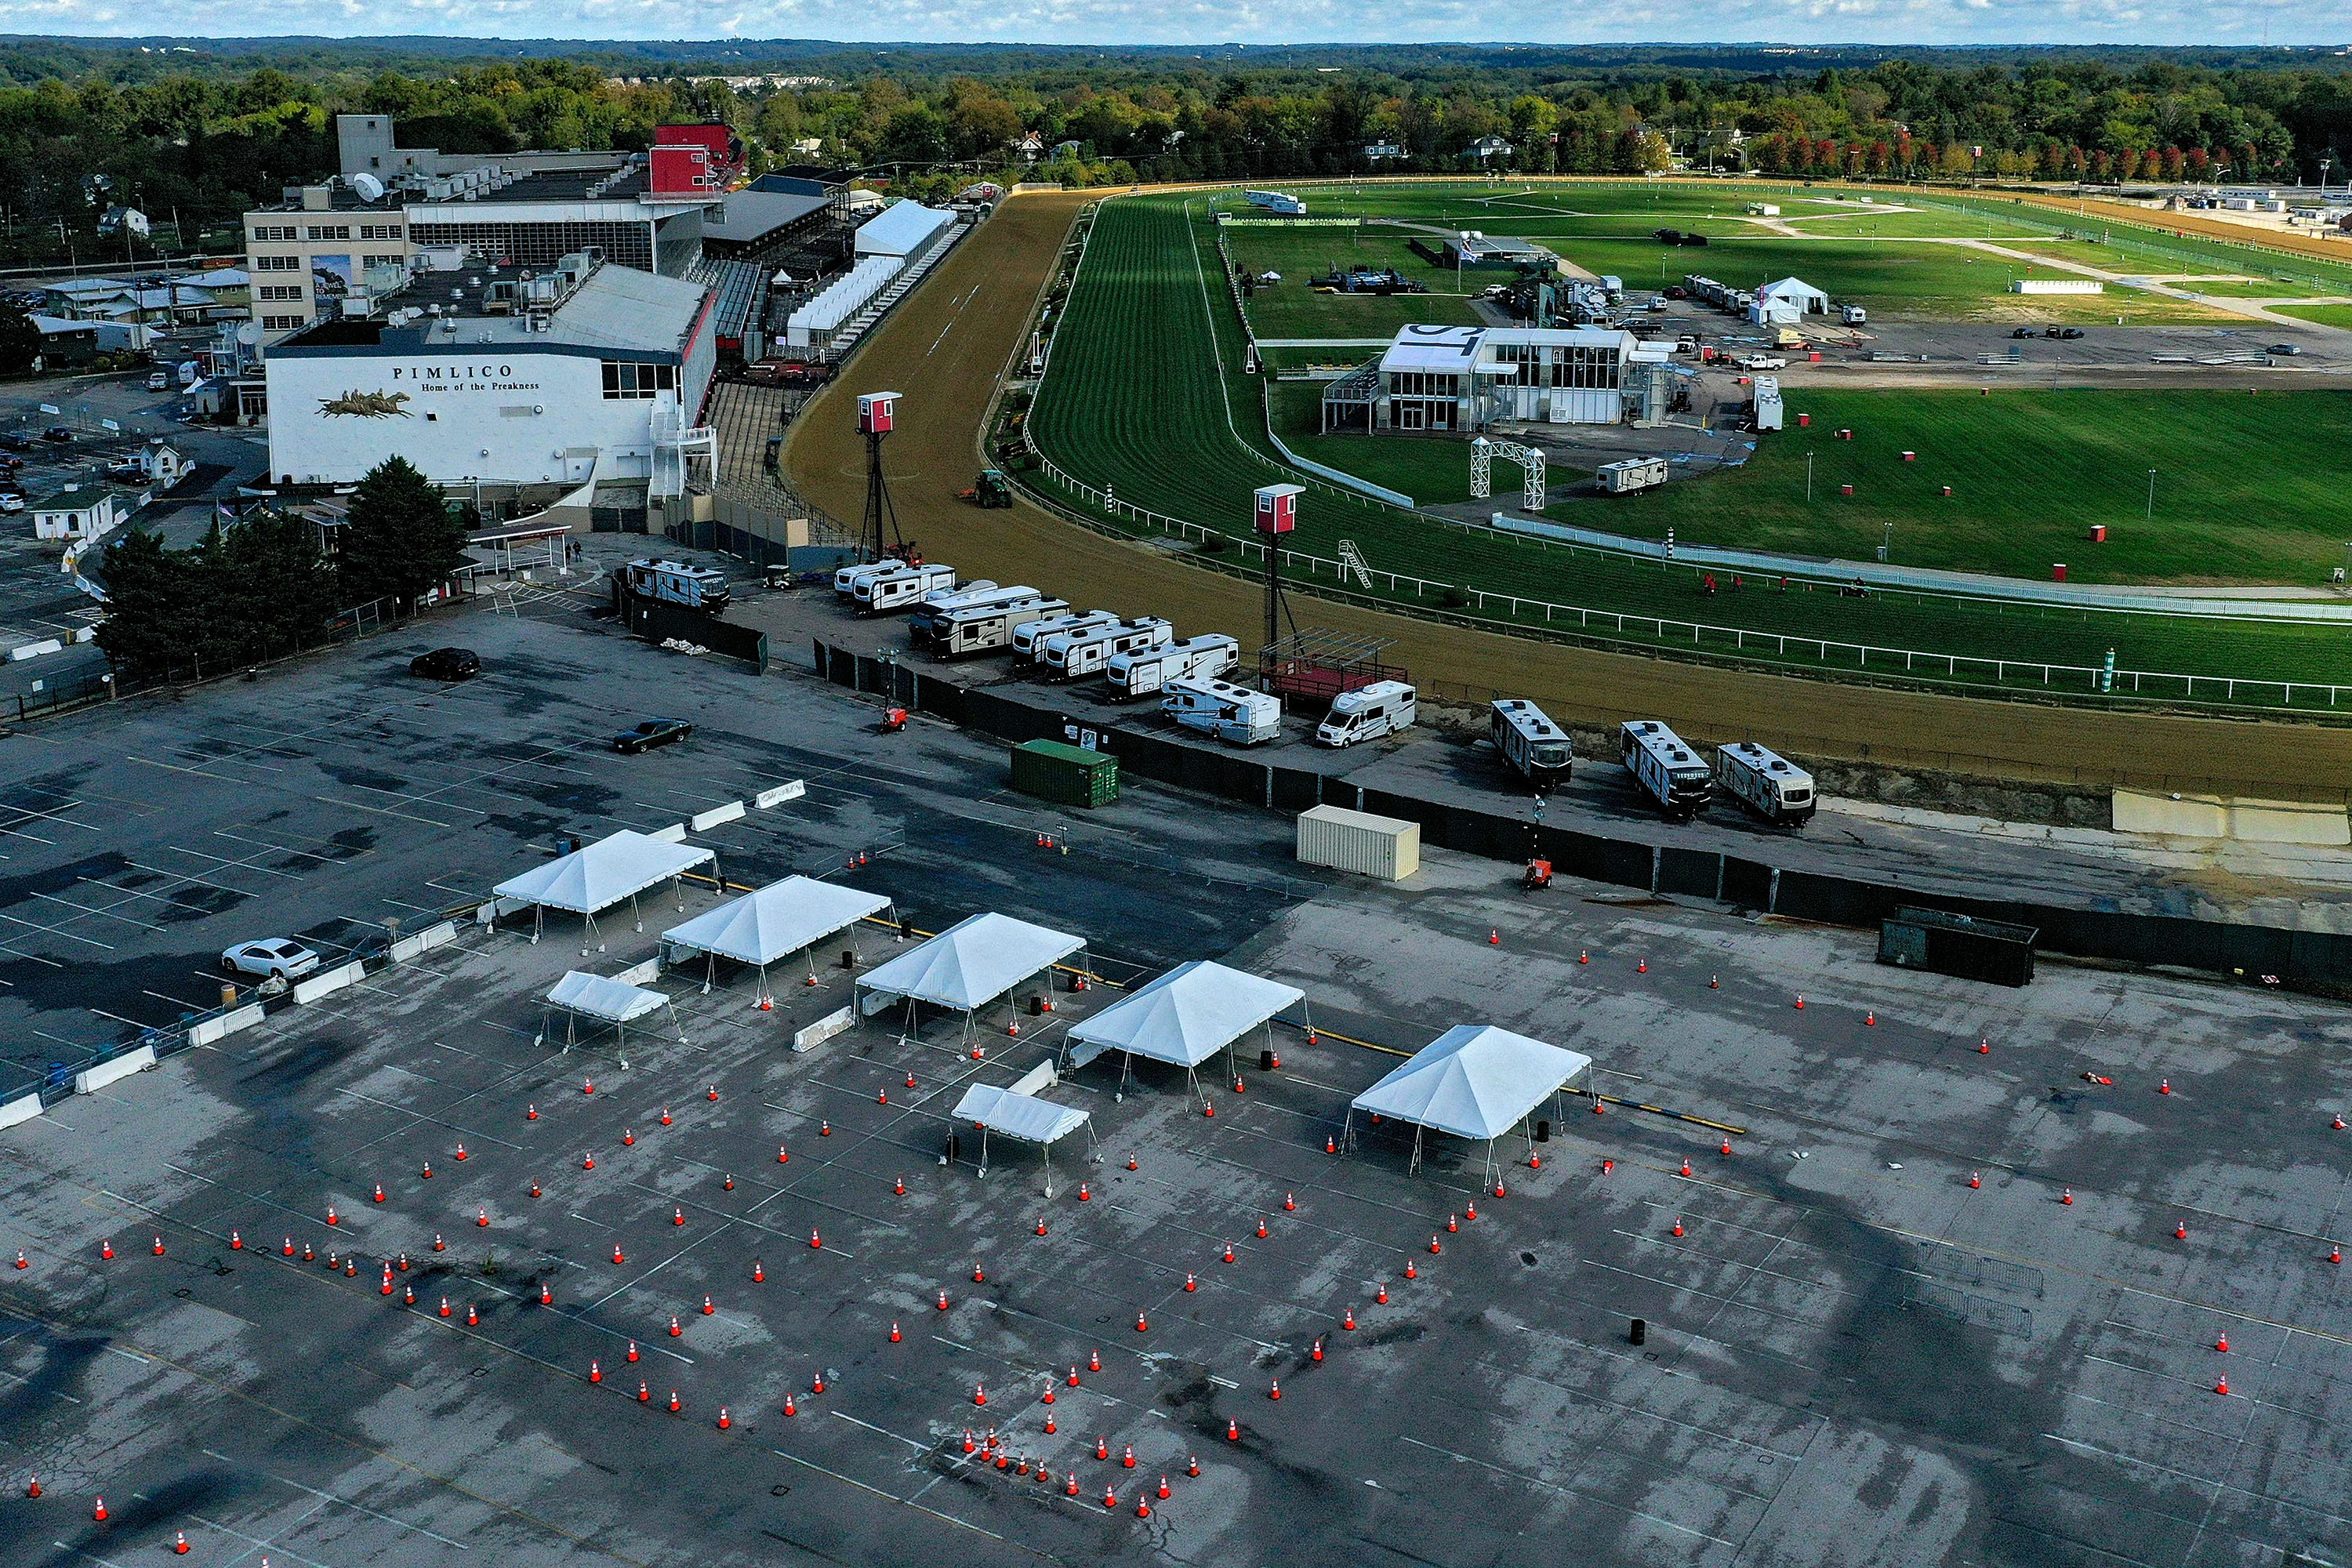 In an aerial view from a drone, COVID-19 testing is seen Oct. 2, the day prior to the 145th Running of the Preakness Stakes at Baltimore's Pimlico Race Course.